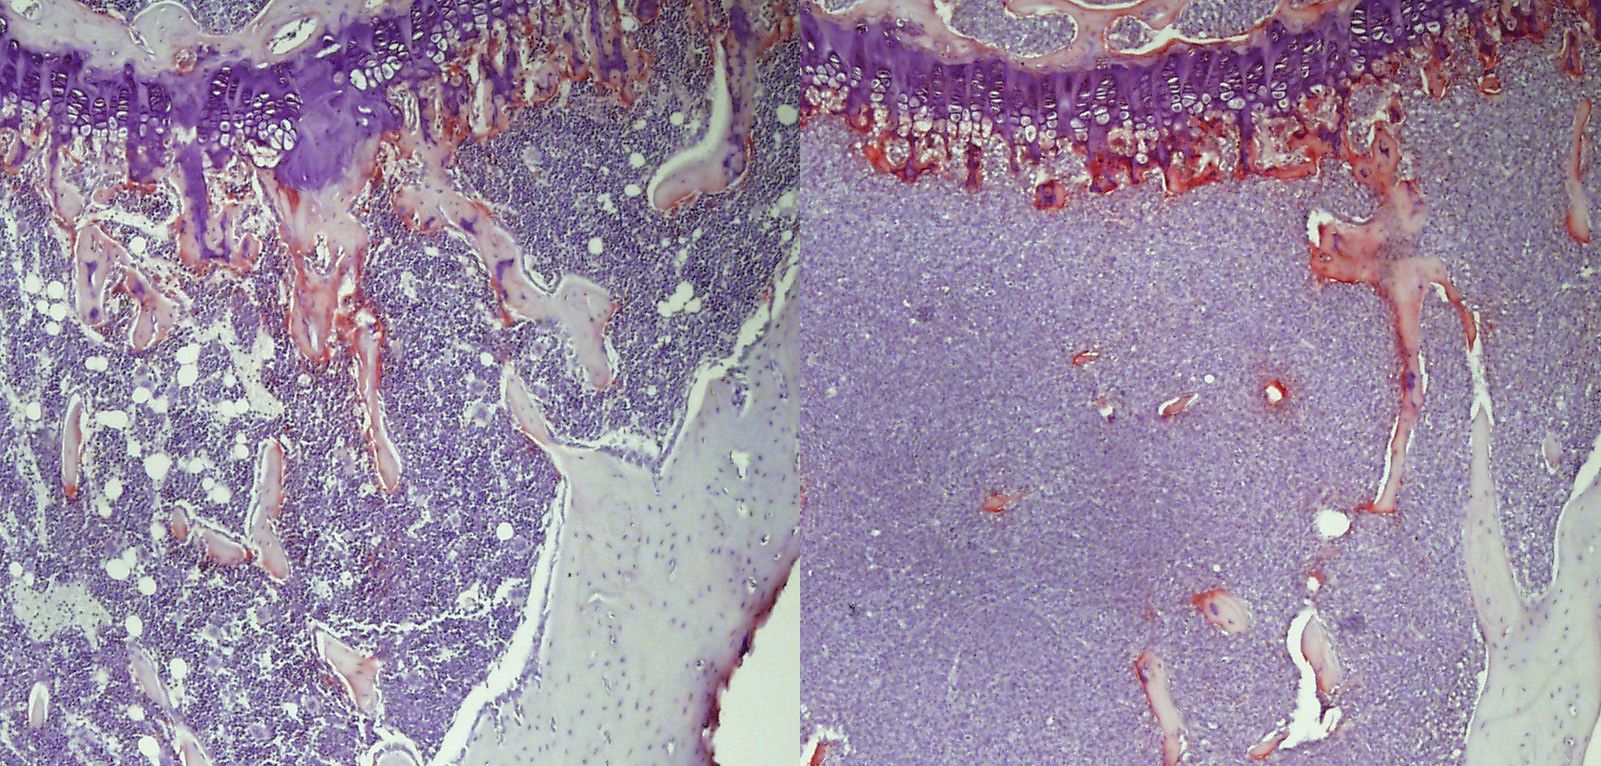 Tibia from control (left) and myeloma-bearing (right) mice, with osteoclast activity stained red.